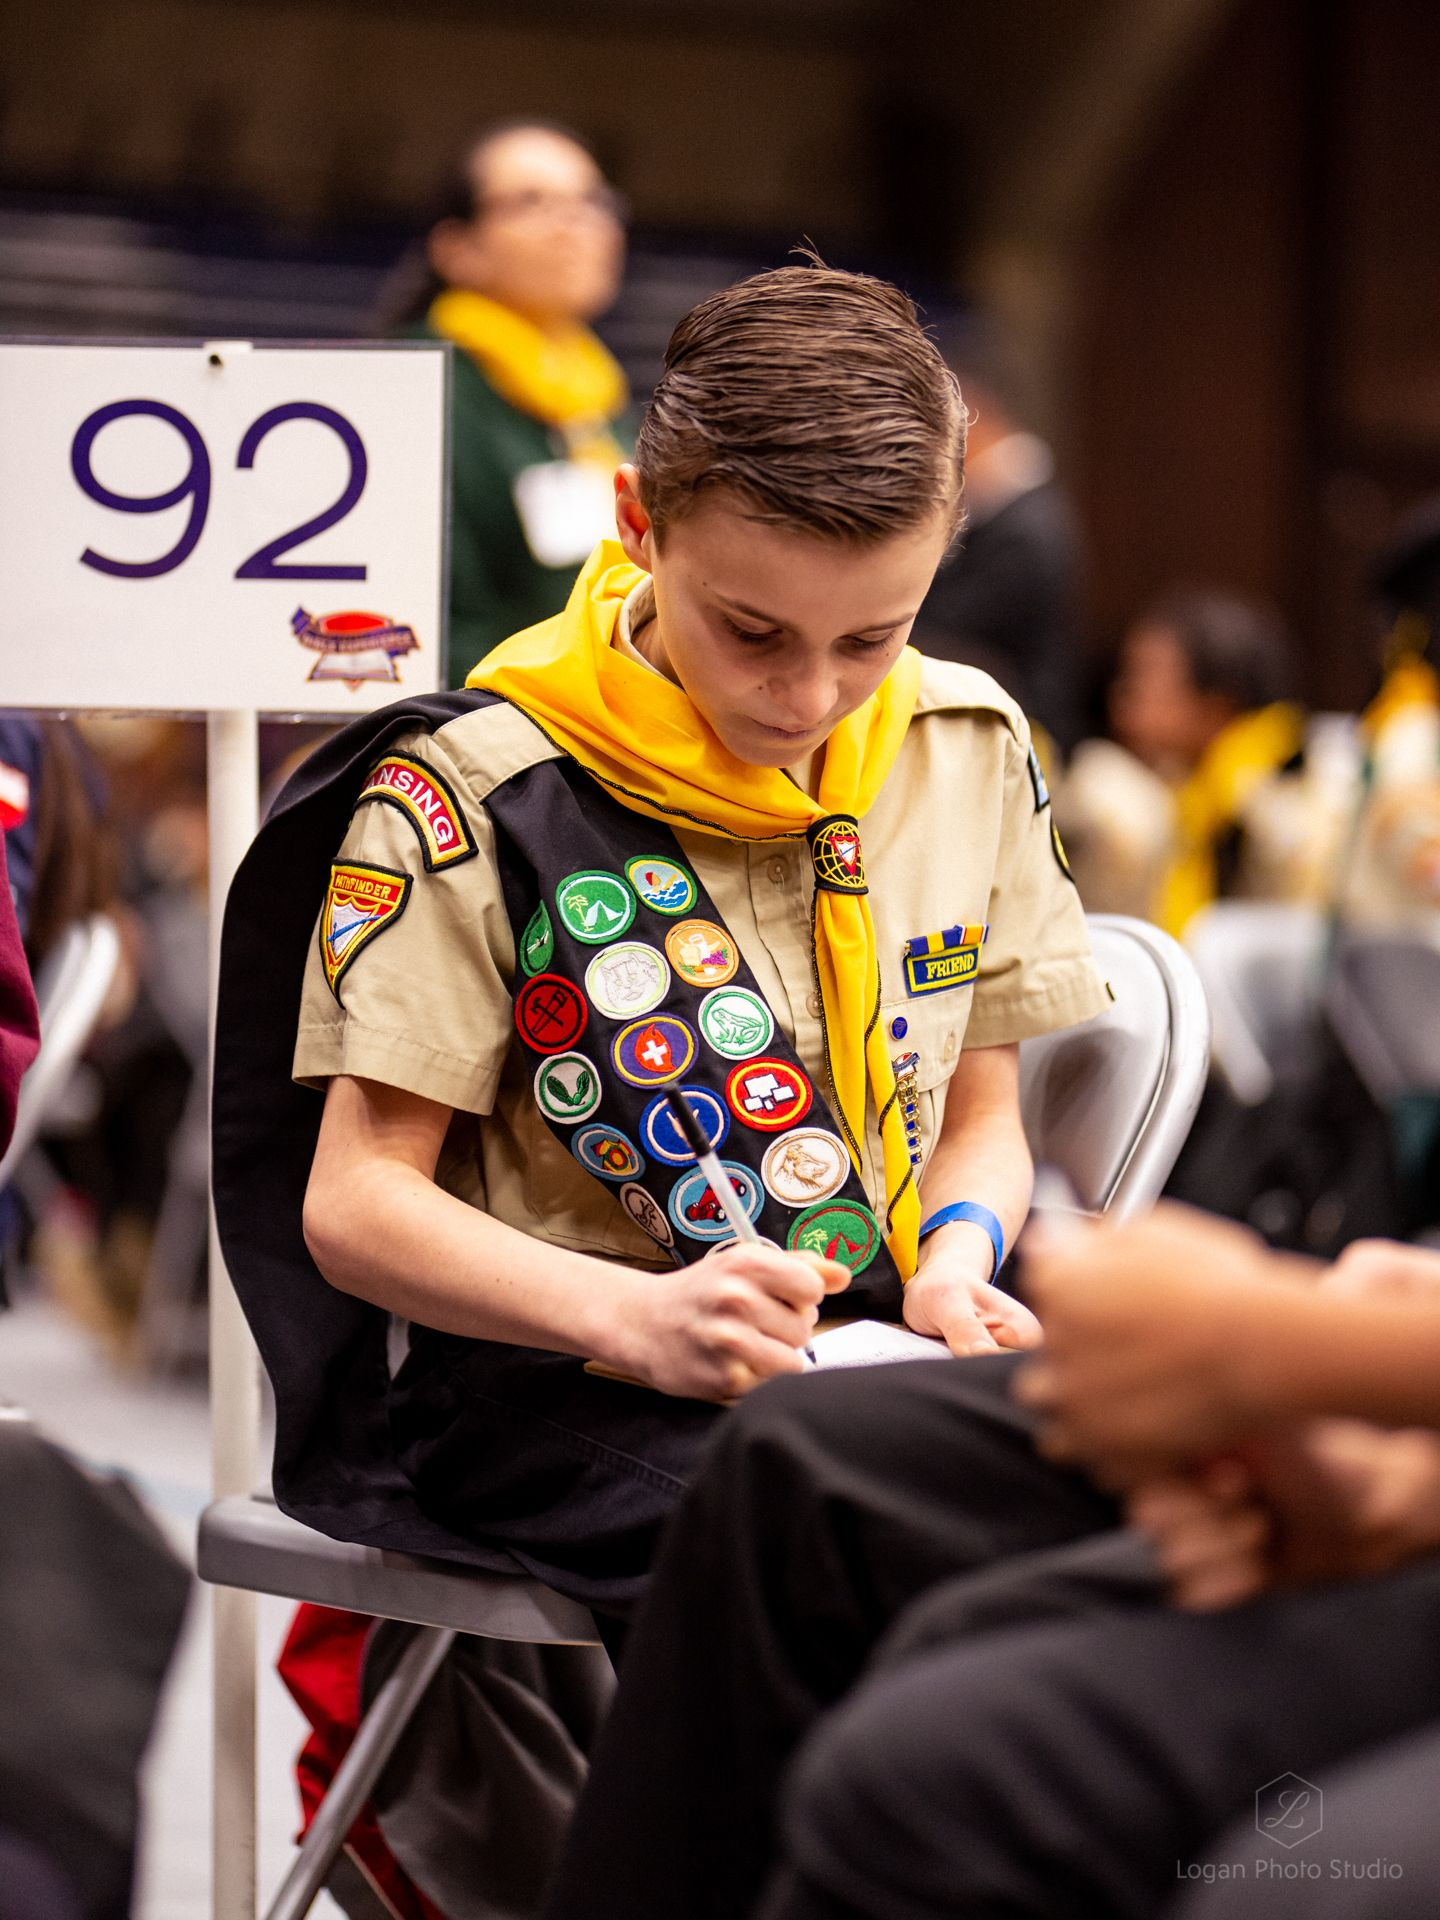 Thousands Descend Upon Illinois for Division Pathfinder